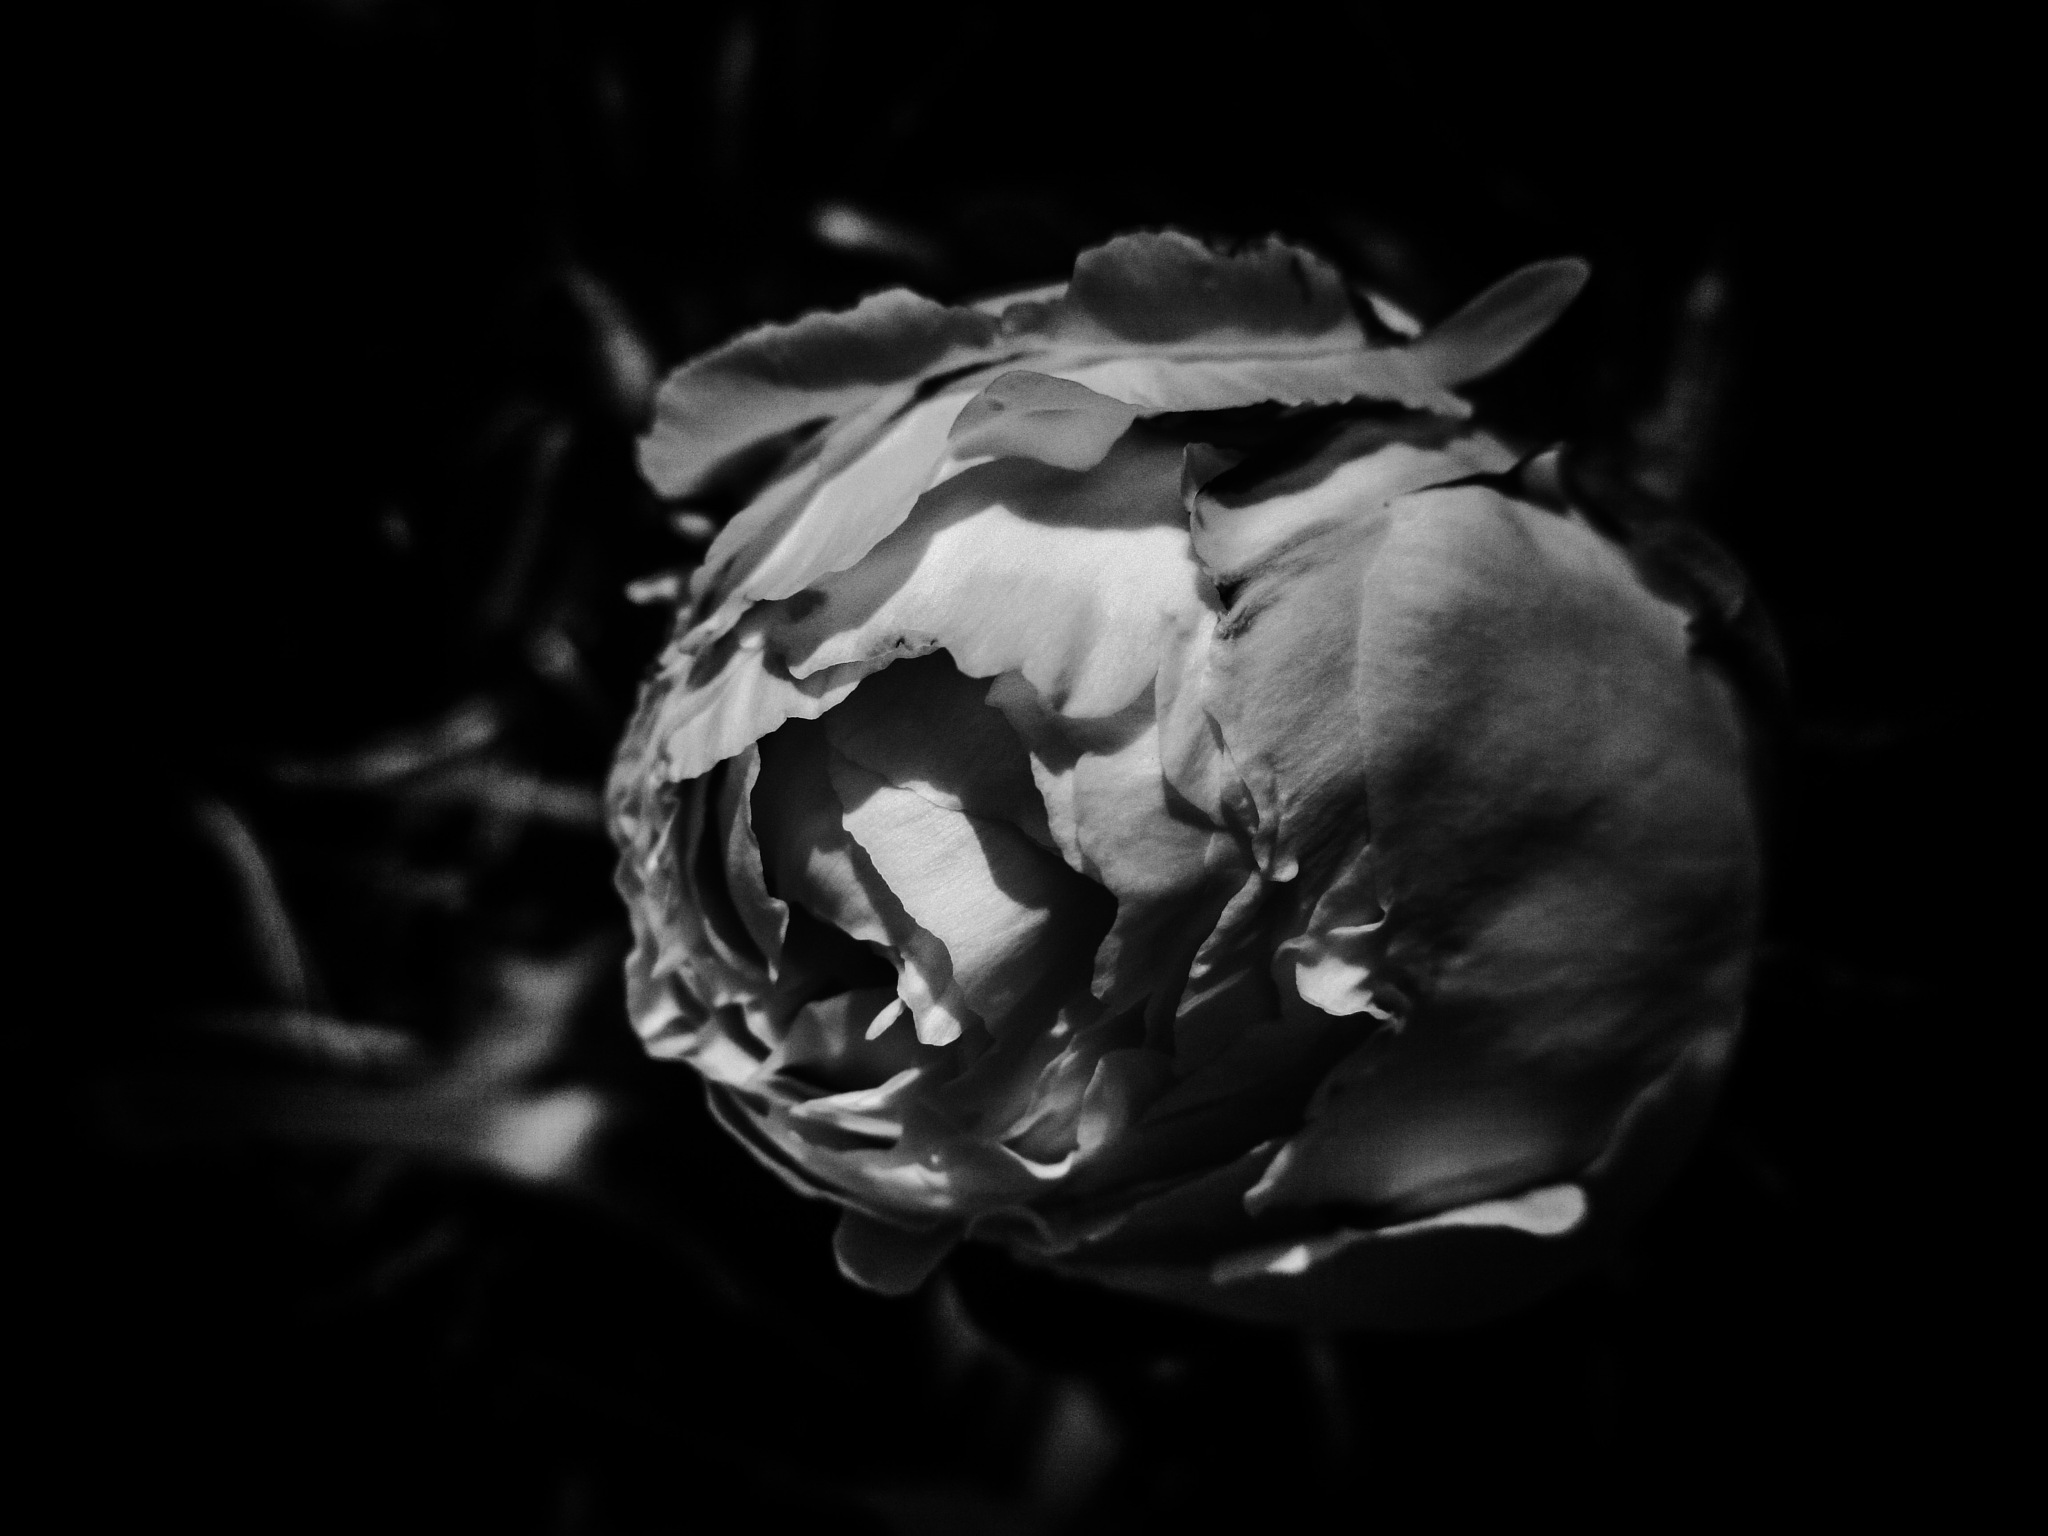 Peony in black and white by Kristen Fisher